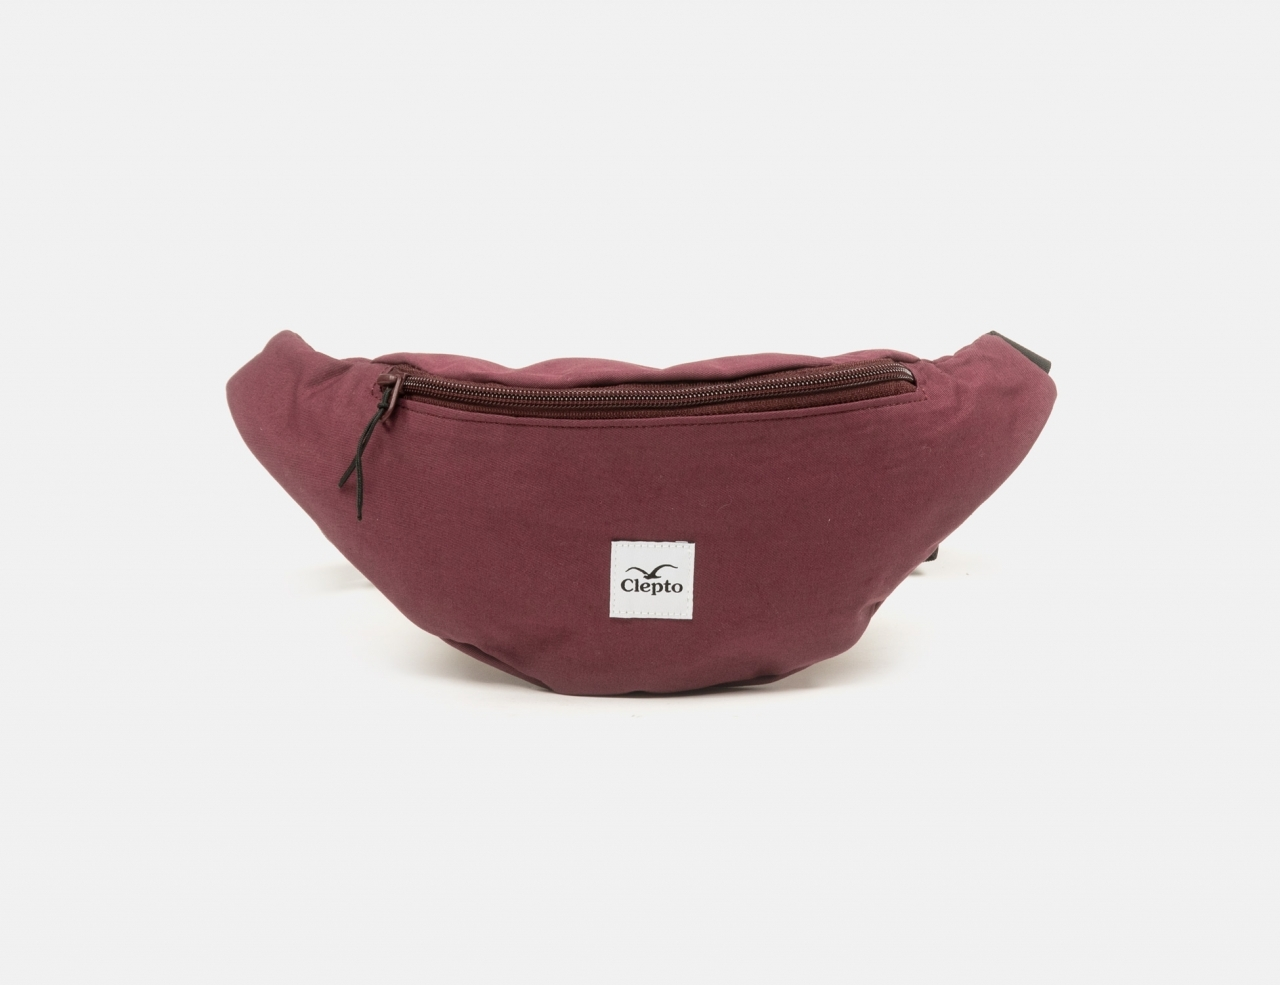 Cleptomanicx C.I. Patch Hip Bag - Port Royale